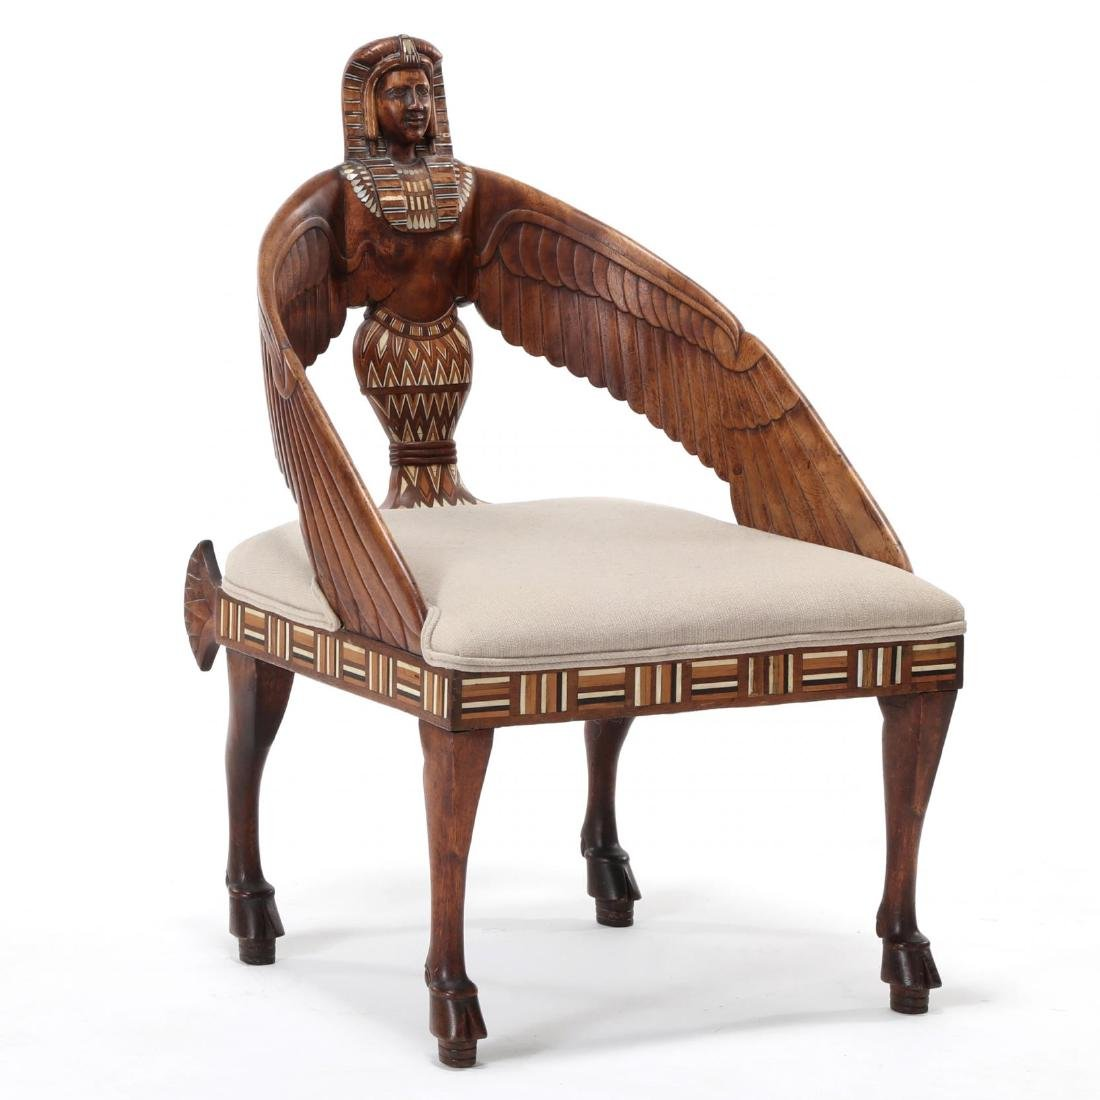 Egyptian Revival Carved and Inlaid Chair